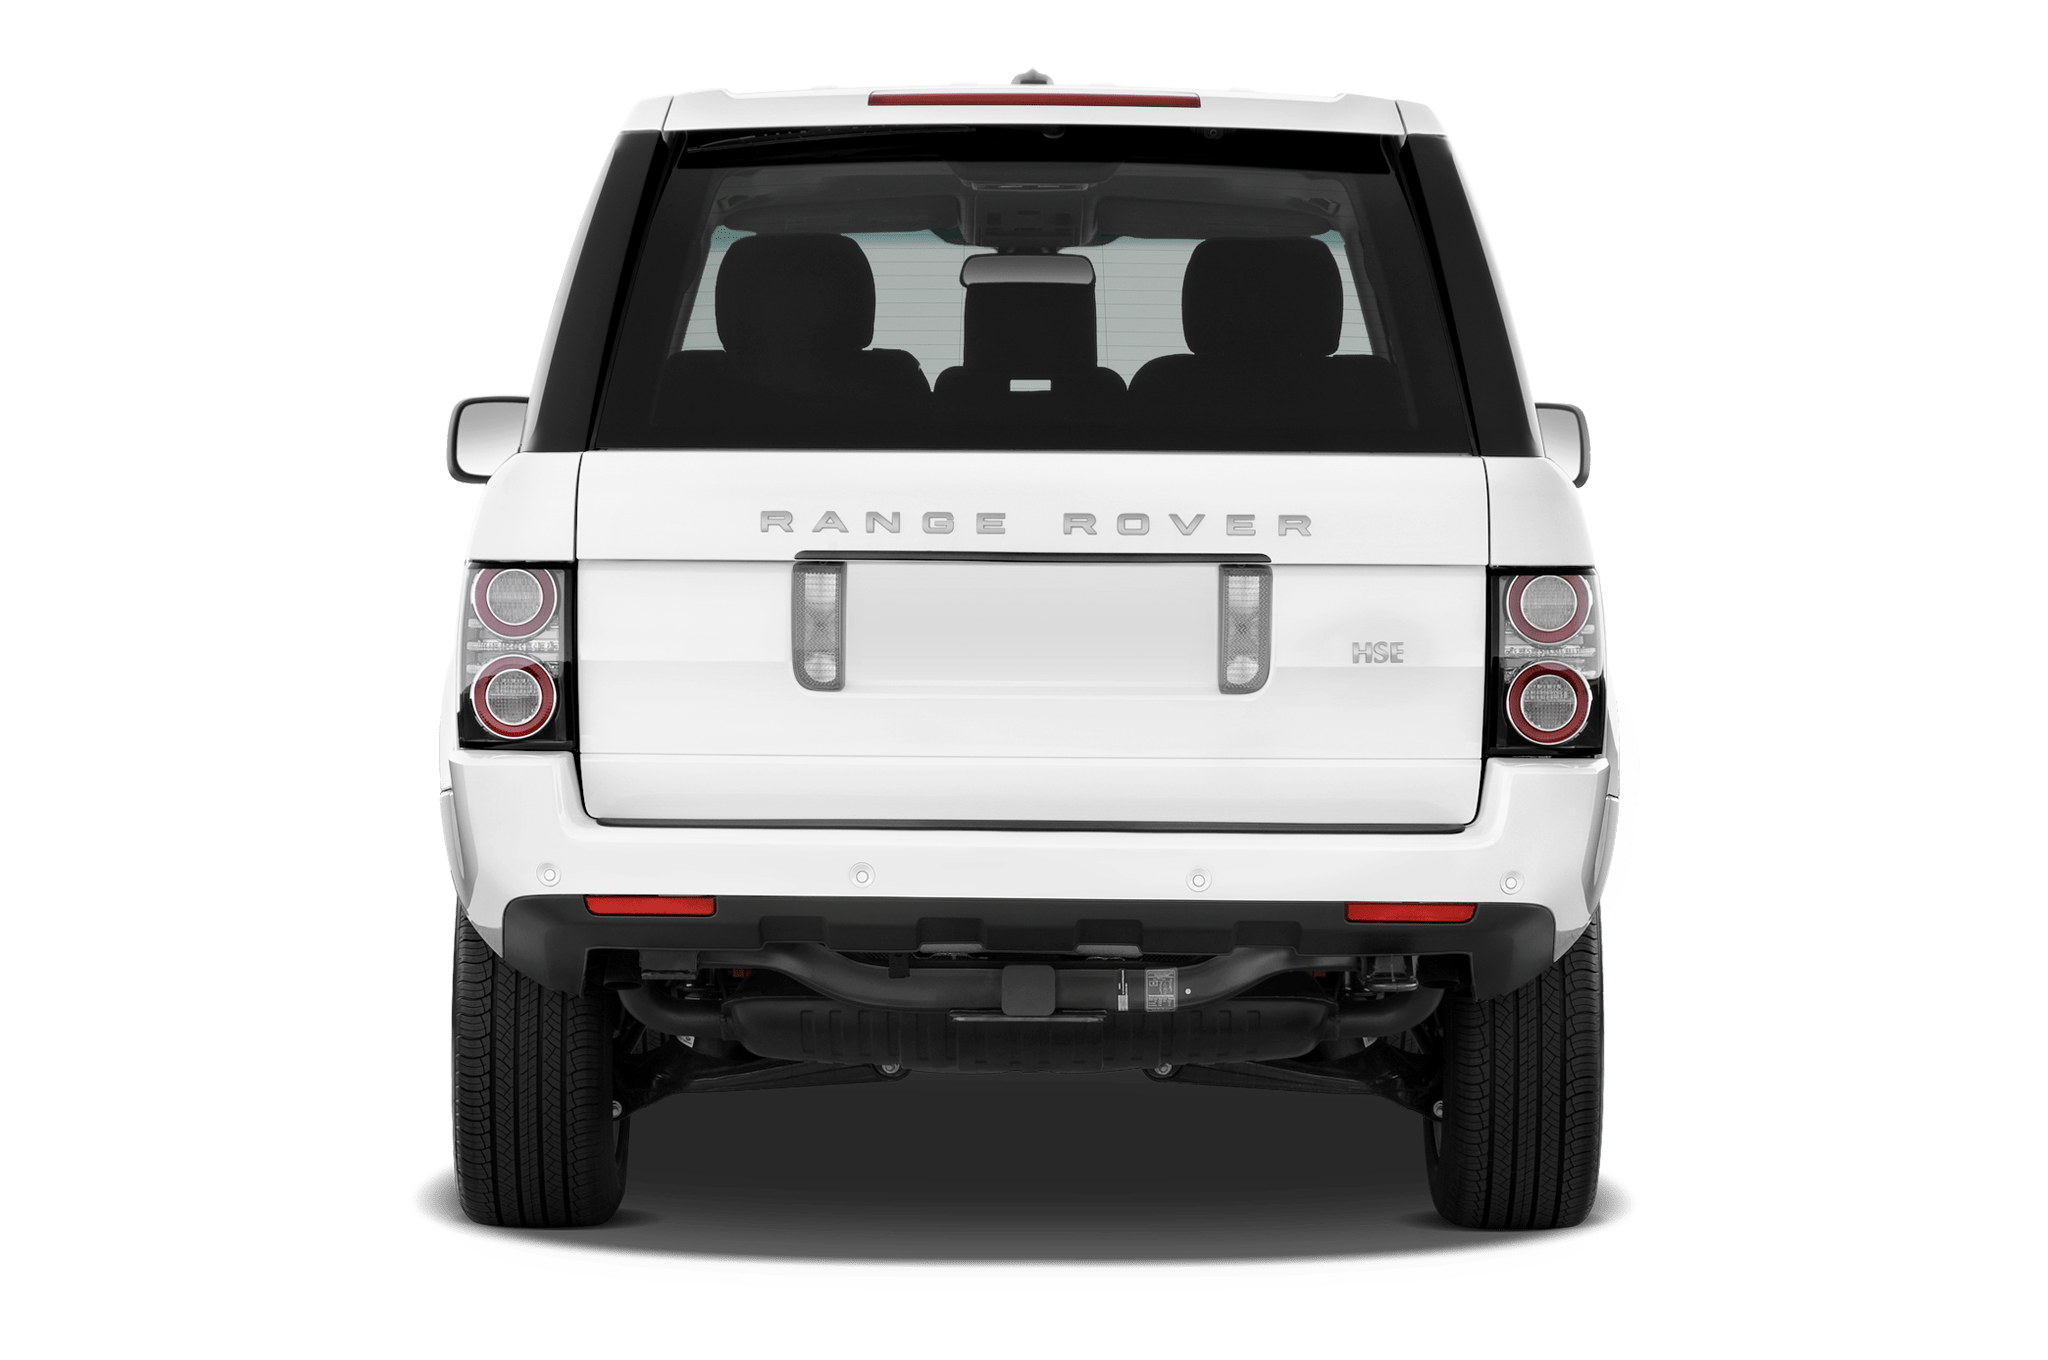 2010 Land Rover Range Rover HSE Land Rover Luxury SUV Review